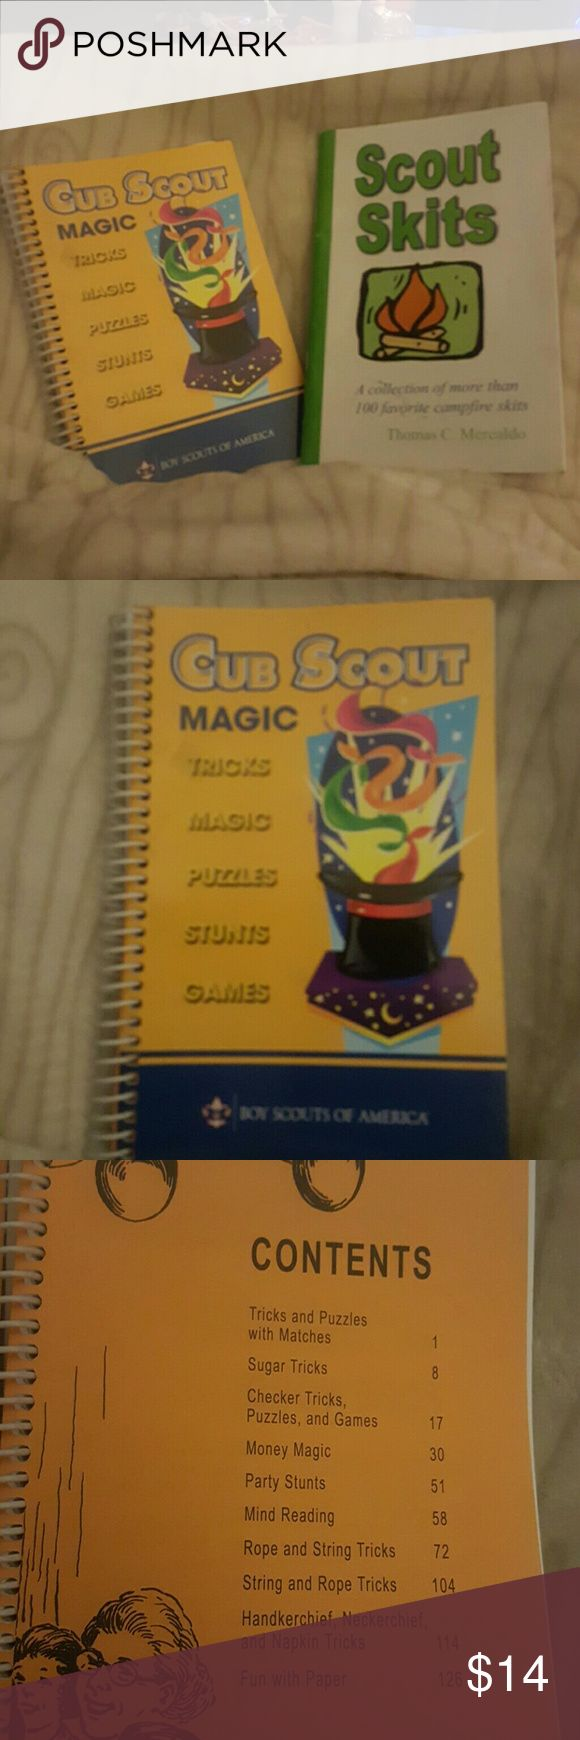 Scout Tricks, Magic, Puzzles, Stunts, Games & Skit Make your campfires, cookouts & den meetings more fun & get everyone involved in the Pack fun!   Cub Scout Magic is filled w/over 125 pages of fun Scout Skits has a collection of more than 100 favorite campfire skits.   Brand new,  just some markings on the cover from storage.  PRICE IS FIRM..... BUNDLE FOR MORE SAVINGS! Other